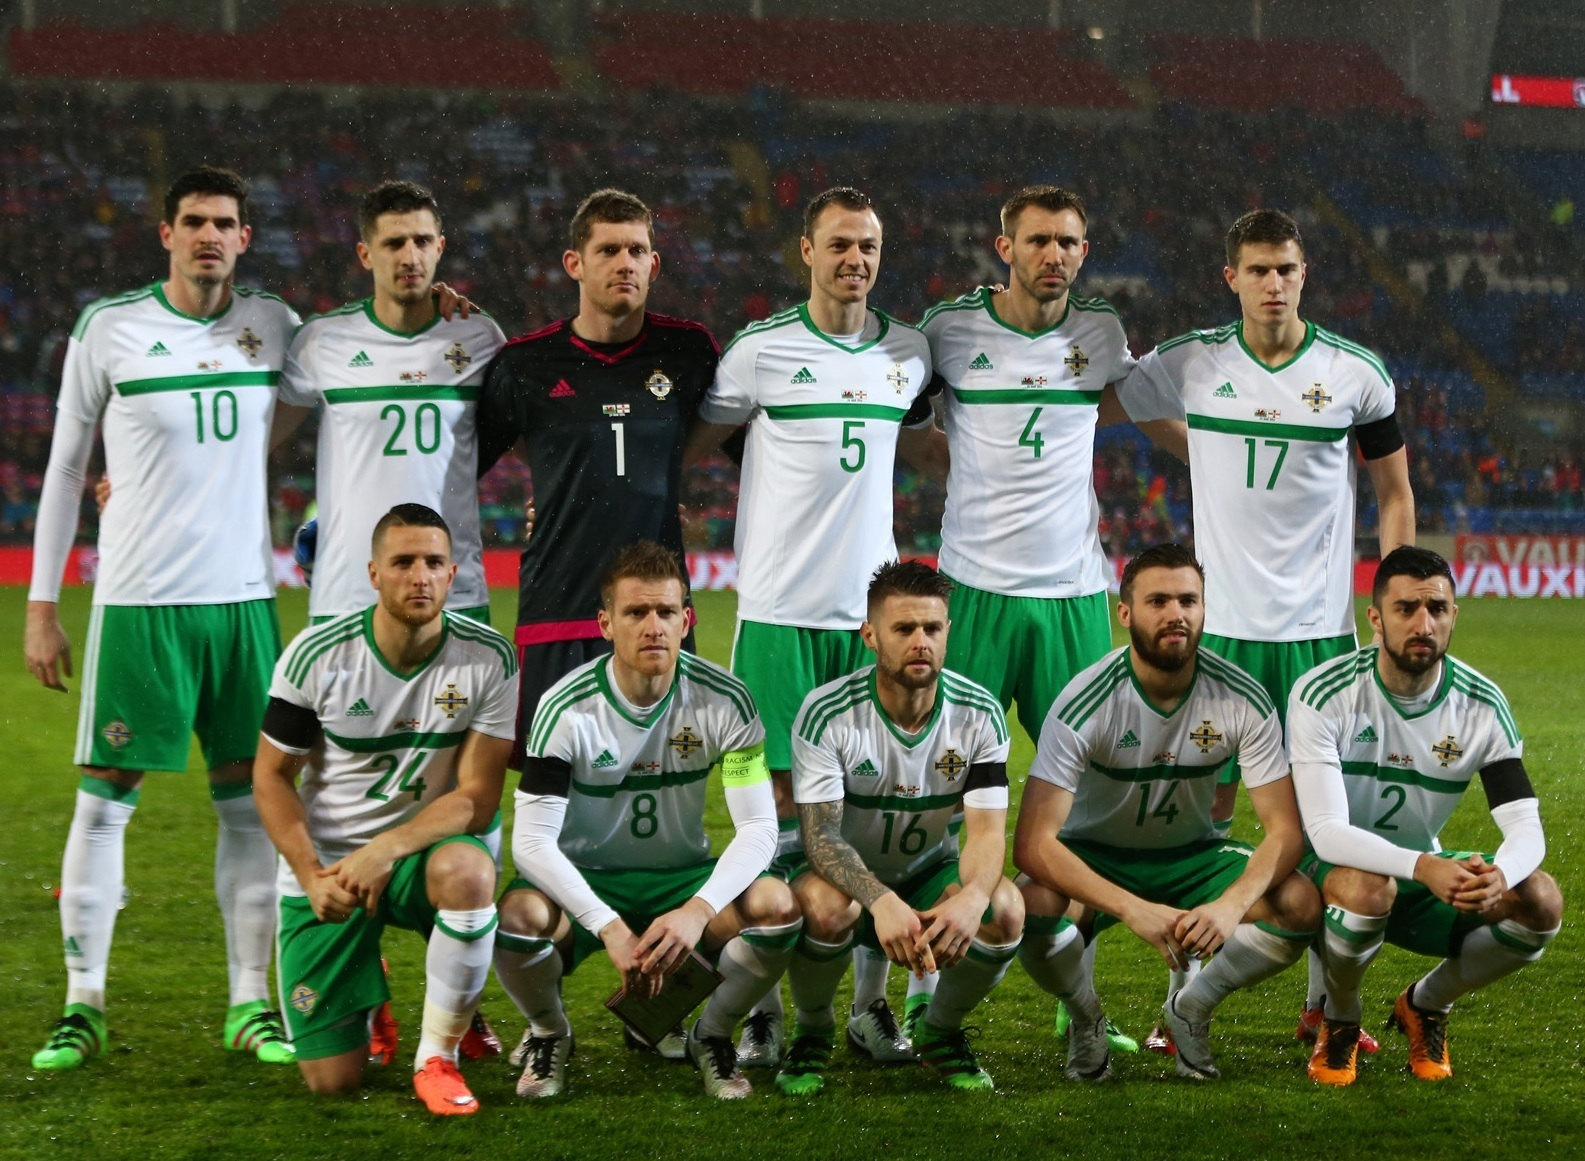 Northern-Ireland-2016-adidas-away-kit-white-green-white-line-up.jpg